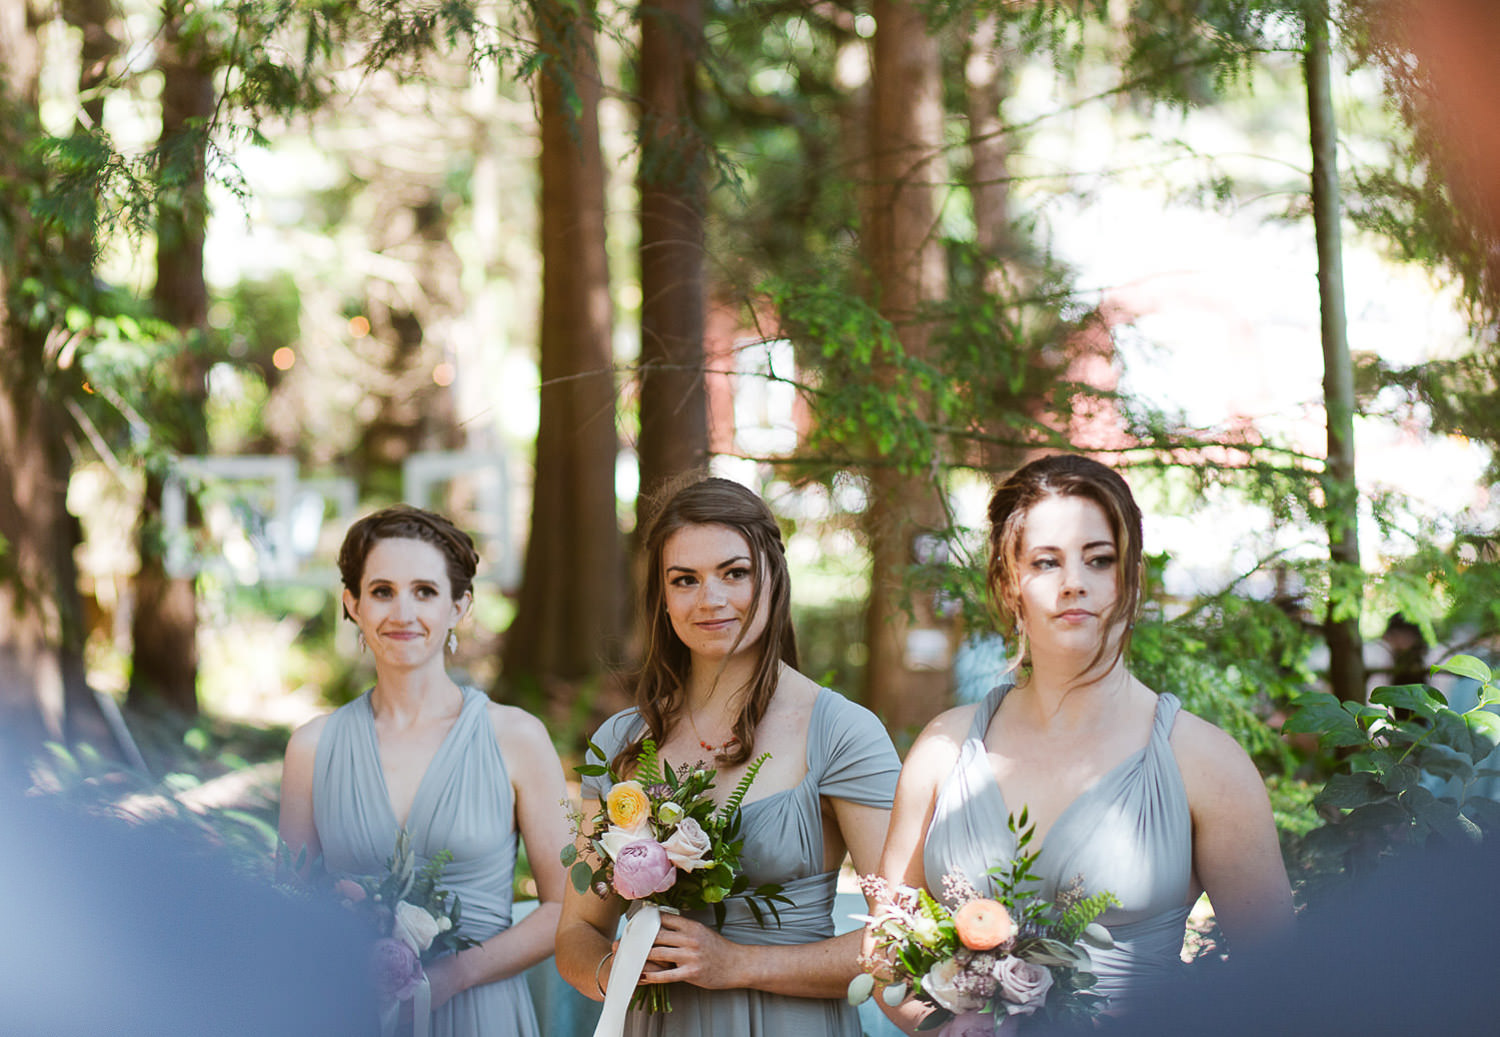 Intimate wedding ceremony into the woods - Bridesmaids